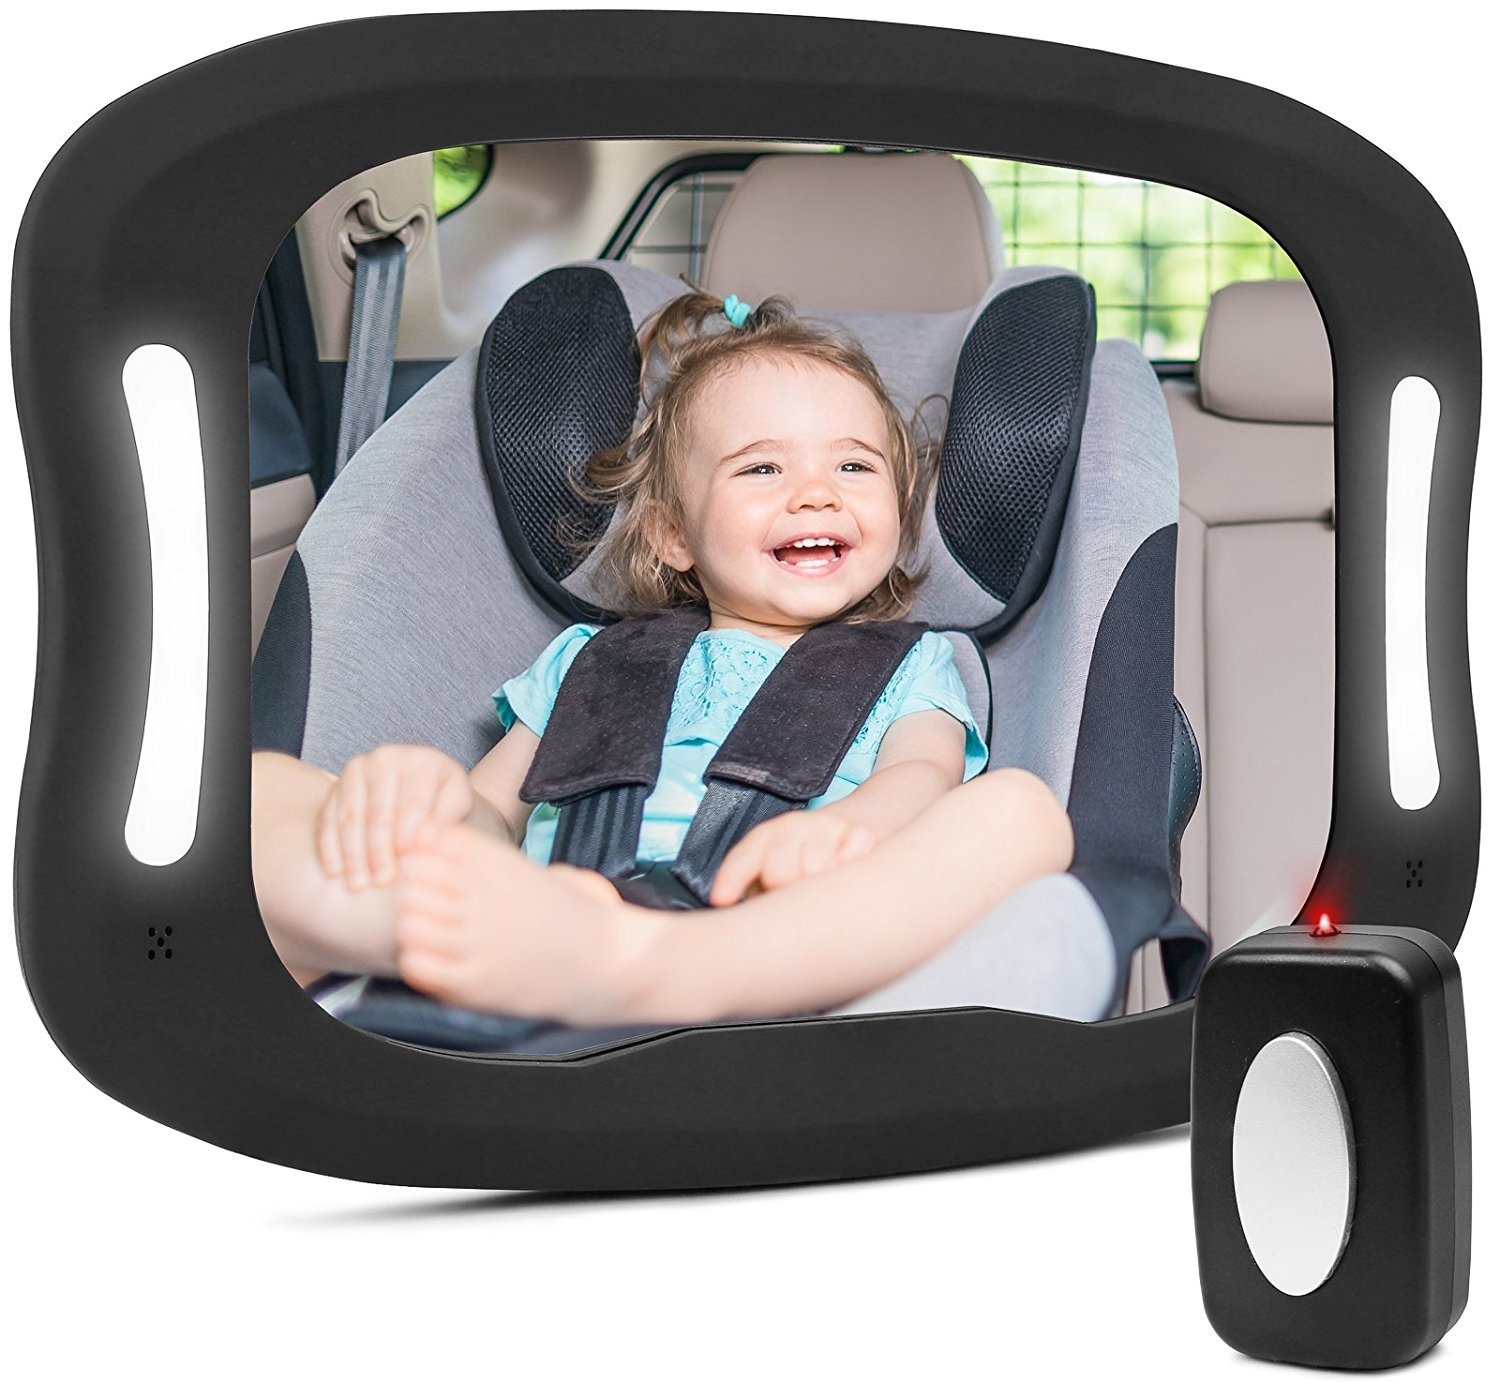 Baby Car Mirror for Back Seat Shatter-proof LED Baby Mirror for Car View Infant in Rear Facing Car Seat Wide Convex Mirror Easily to Observe the Baby's Every Move Safety and 360 Degree Adjustability LTD